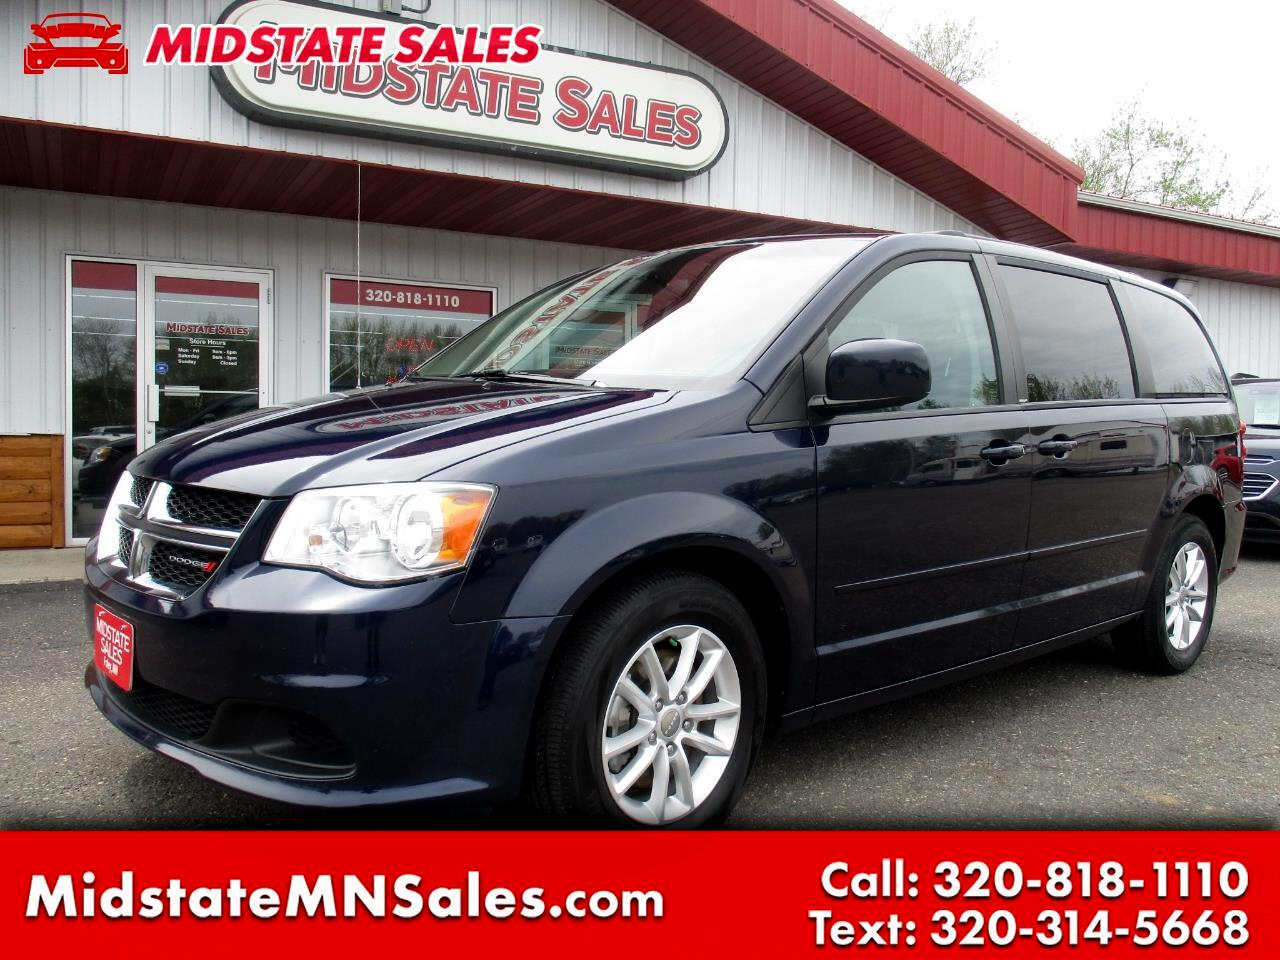 2013 Dodge Grand Caravan 4dr Wgn SXT